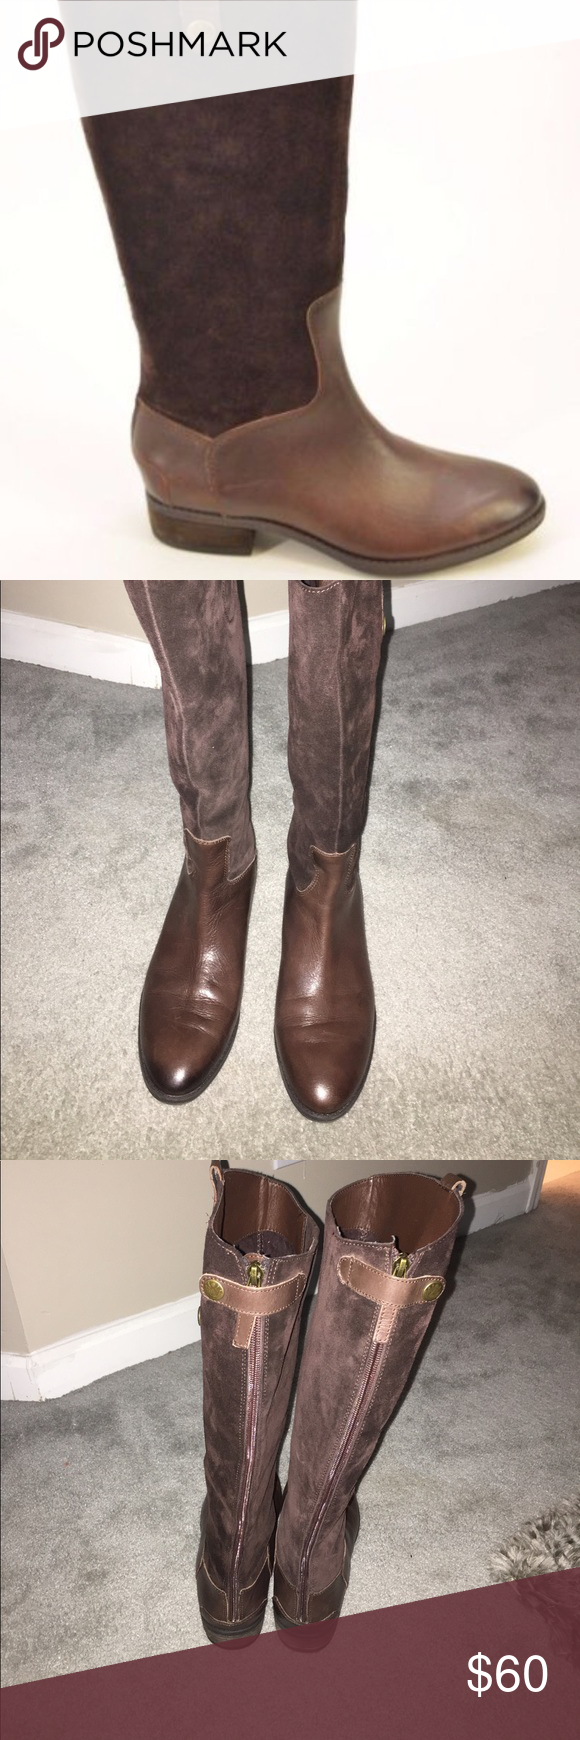 Sam Edelman 'Penny' boot. Sam Edelman 'Penny' boot. Dark brown suede upper. Size 10. Excellent condition only worn a few times. Make an offer. Sam Edelman Shoes Winter & Rain Boots